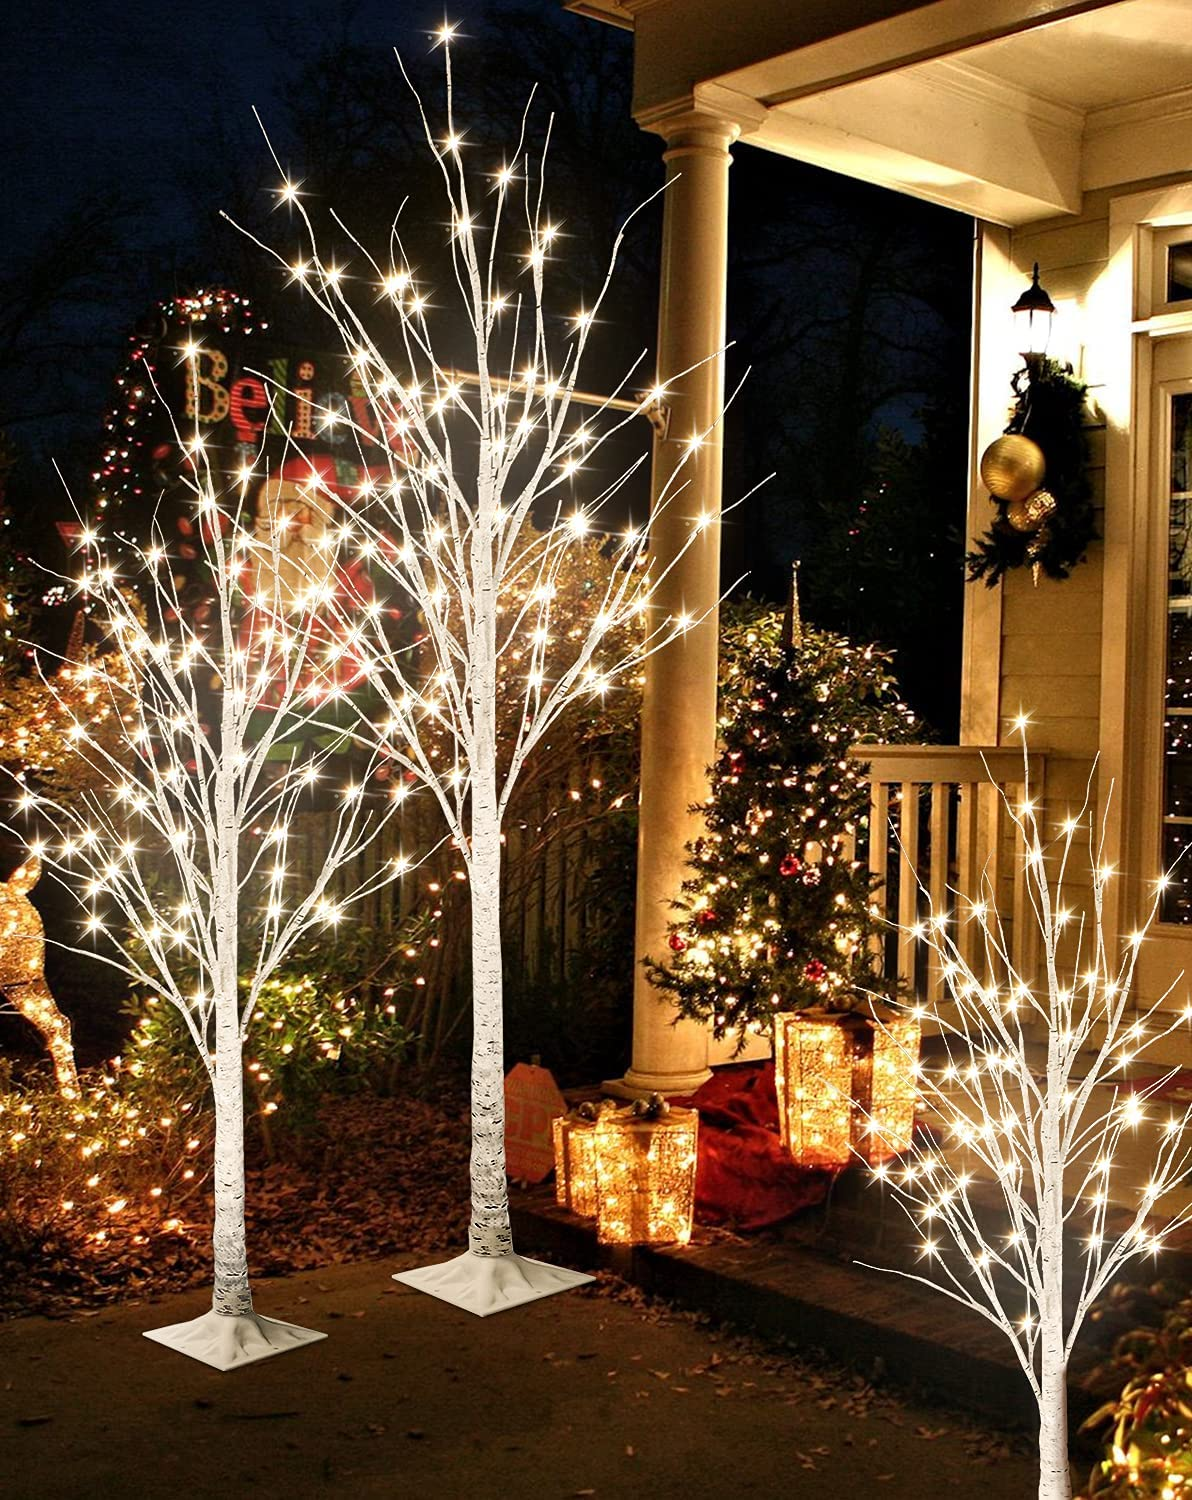 Recaceik LED Lighted Tree Lamp, 3 Pieces Prelit Birch Tree-4ft 5ft 6ft, Inside and Outside, Summer Wedding Christmas Party Home Decor, Warm White